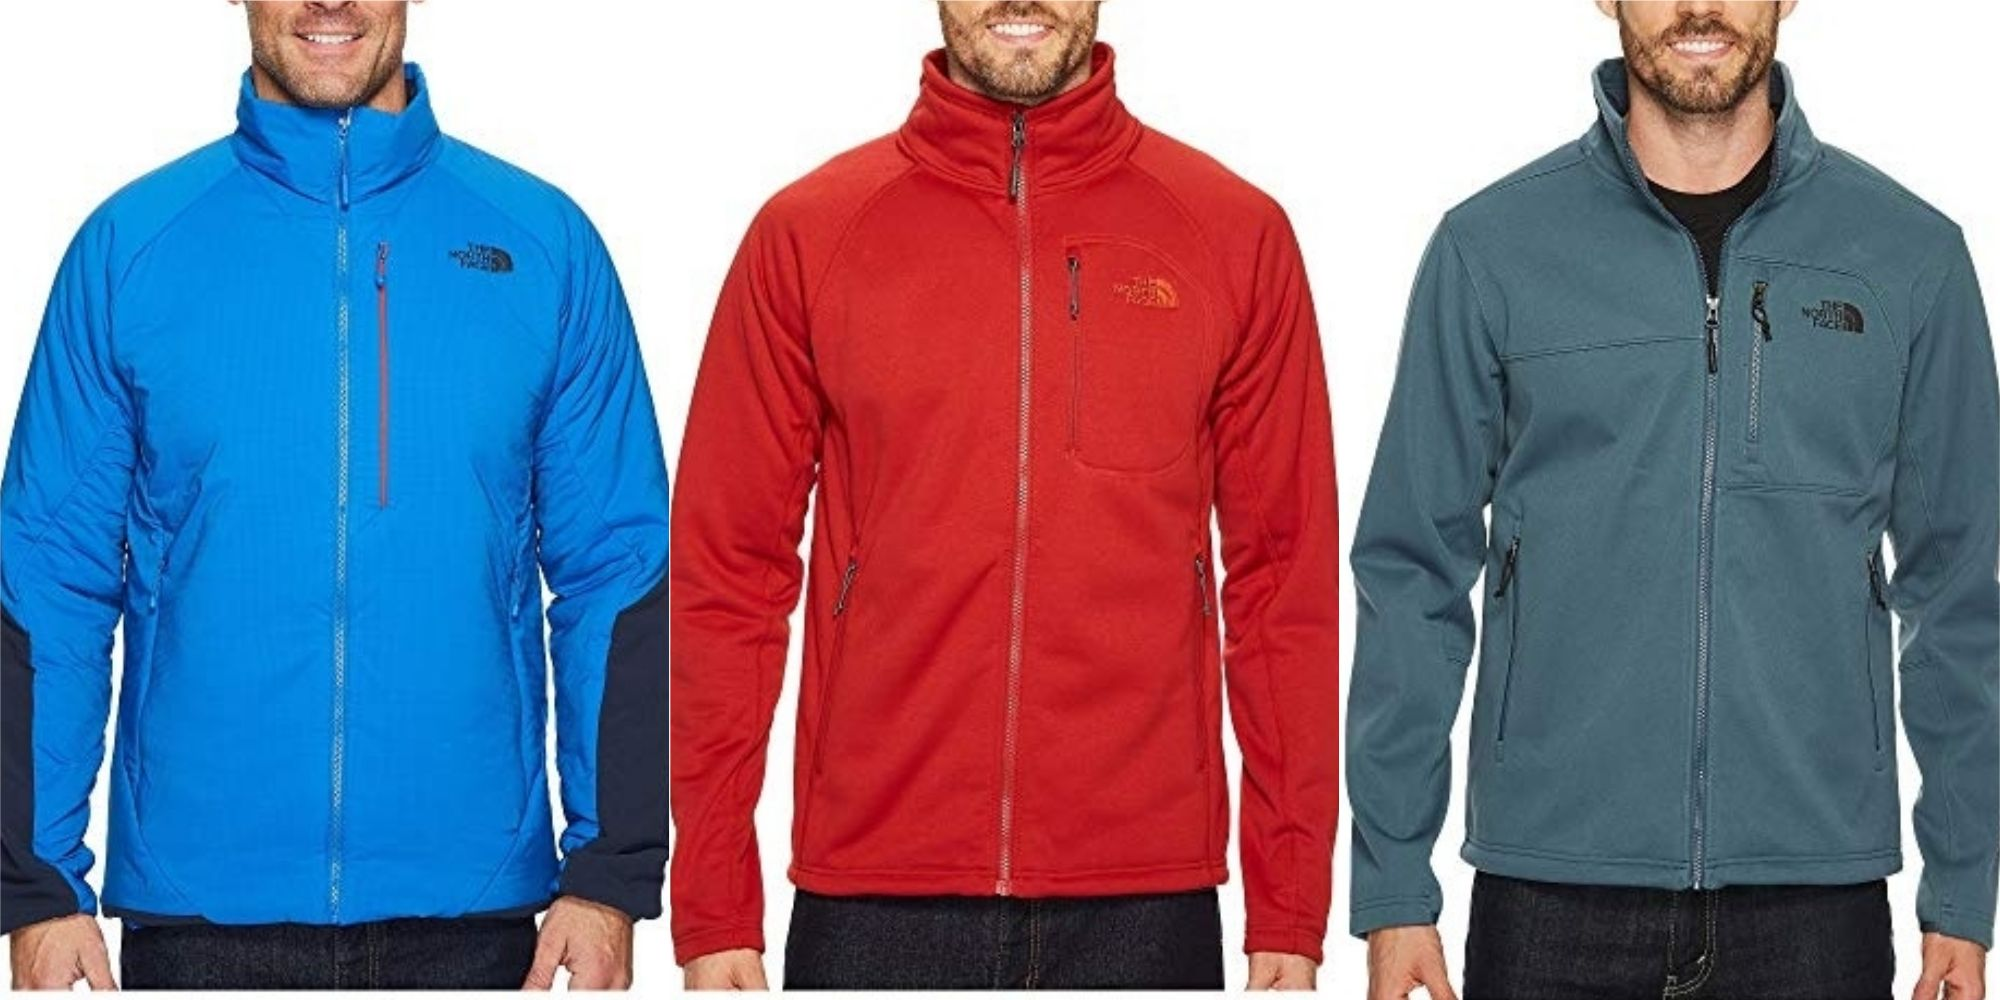 Daily Deal: The North Face Jackets Are on Sale for 50% Off